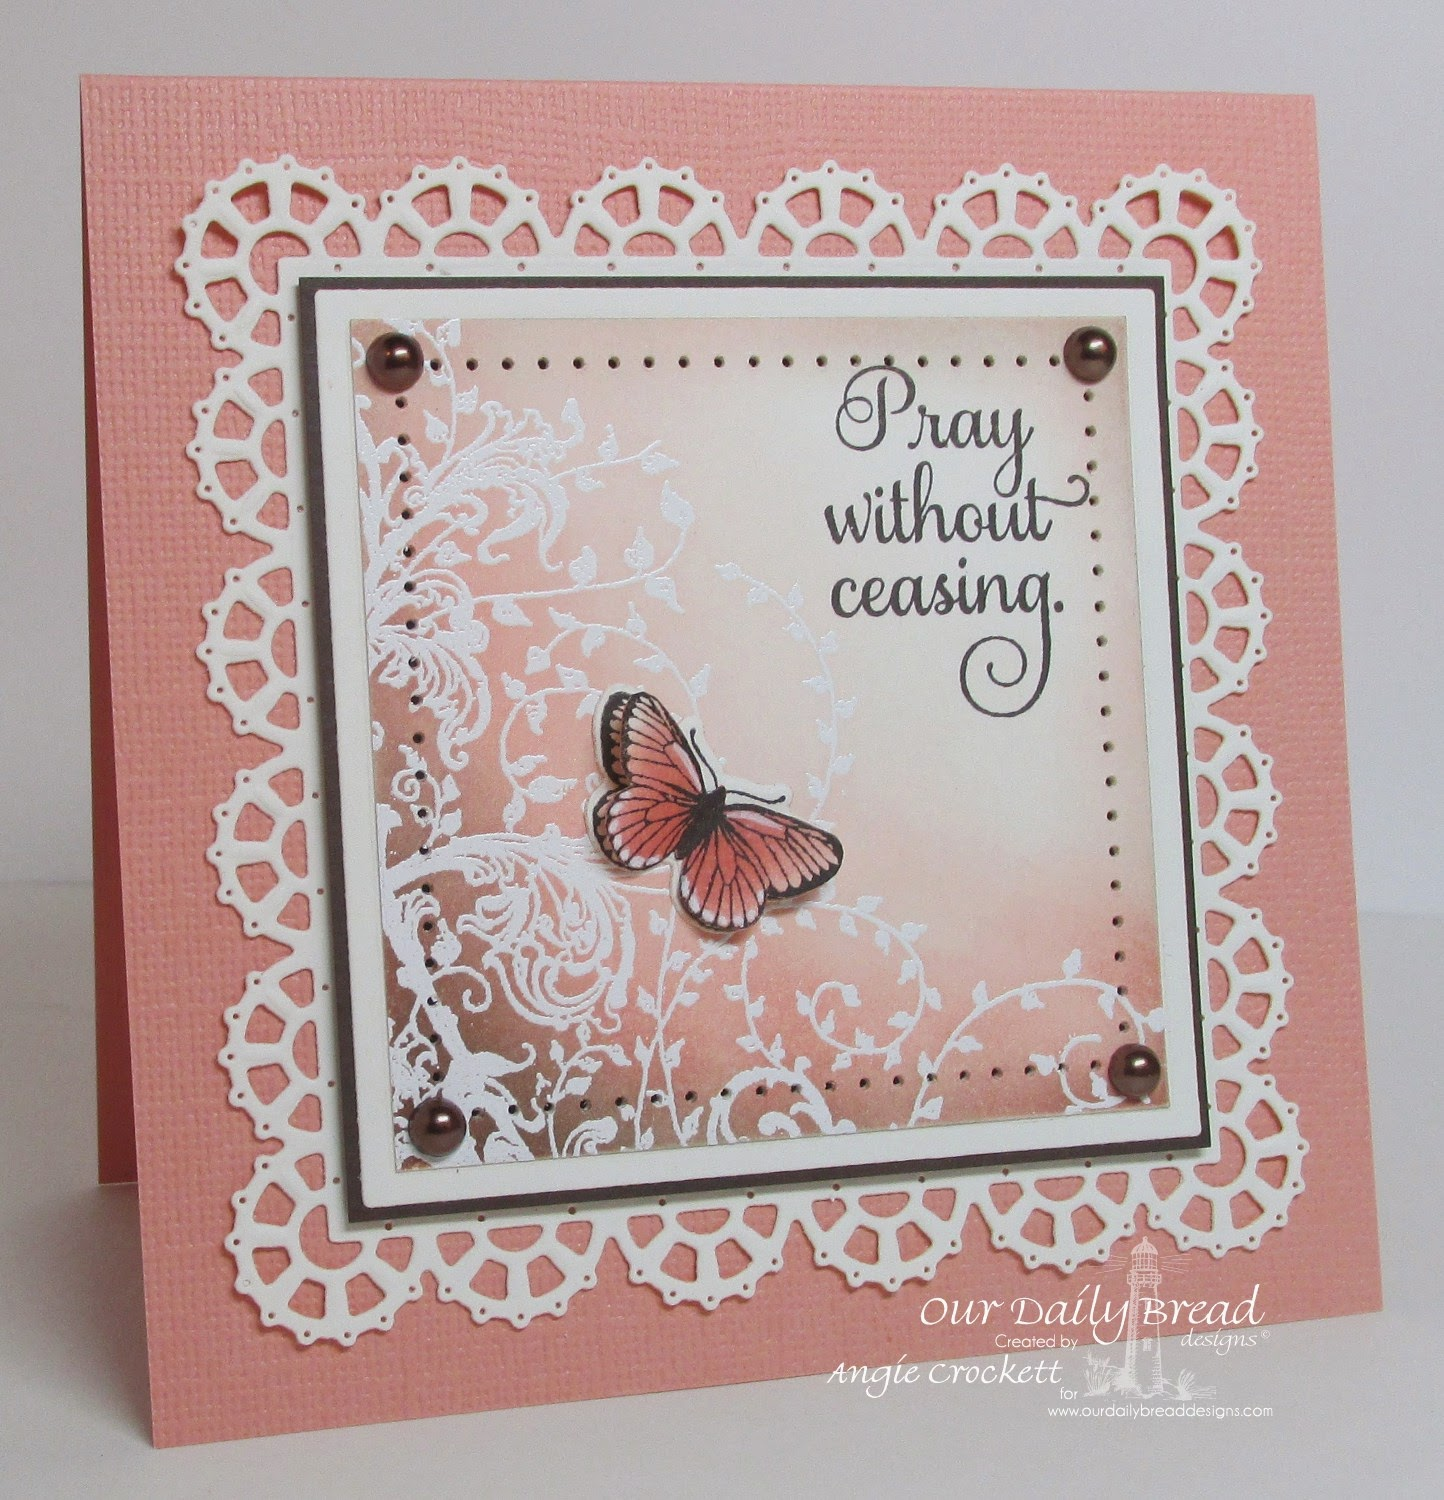 ODBD Belles Vignes, ODBD Butterfly and Bugs, ODBD Custom Butterfly and Bugs Dies, Card Designer Angie Crockett